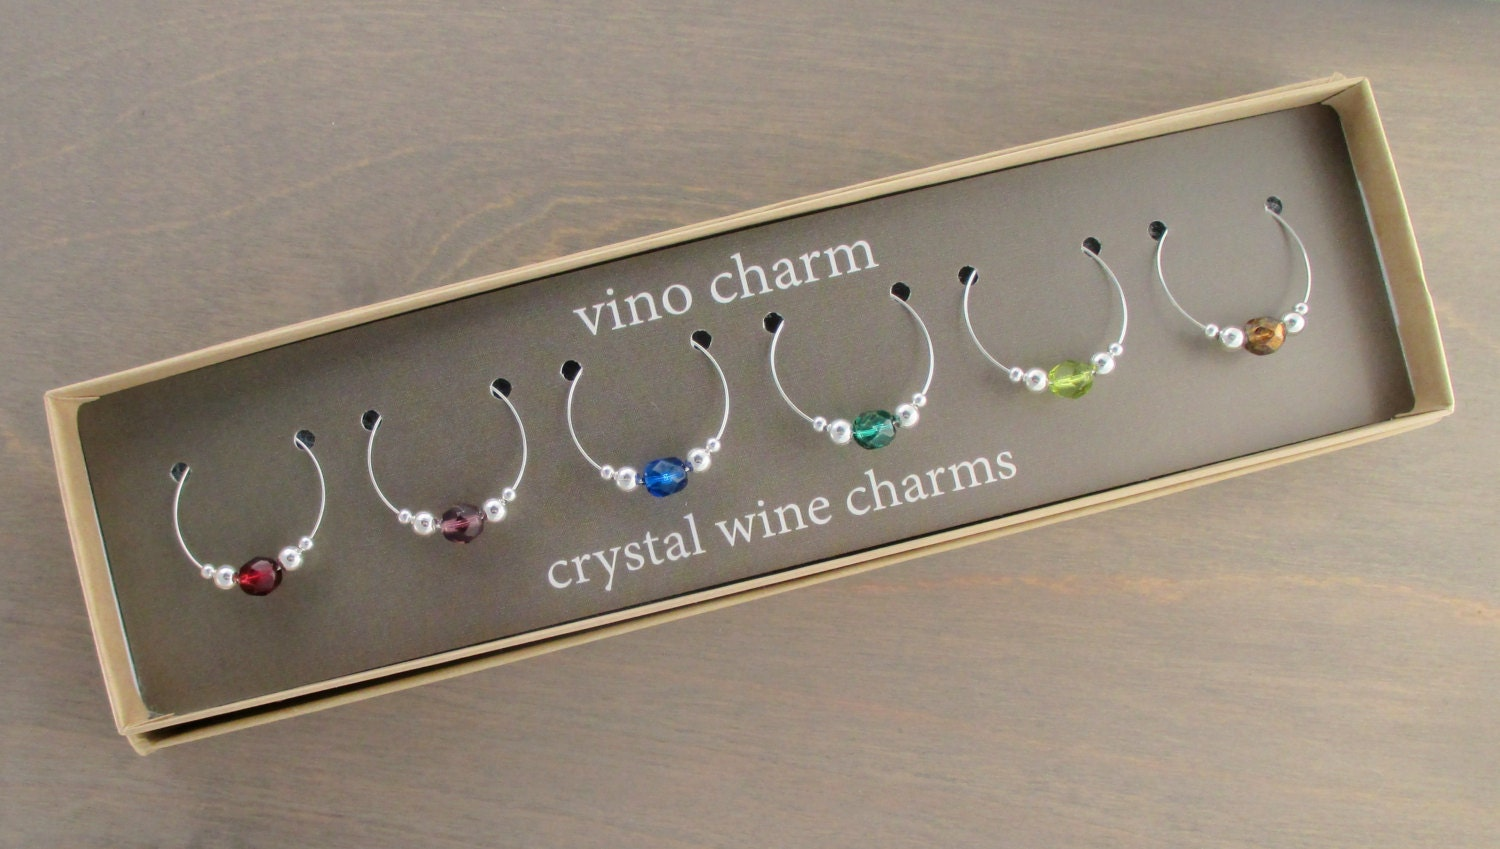 6 wine charms gift box wine glass charms